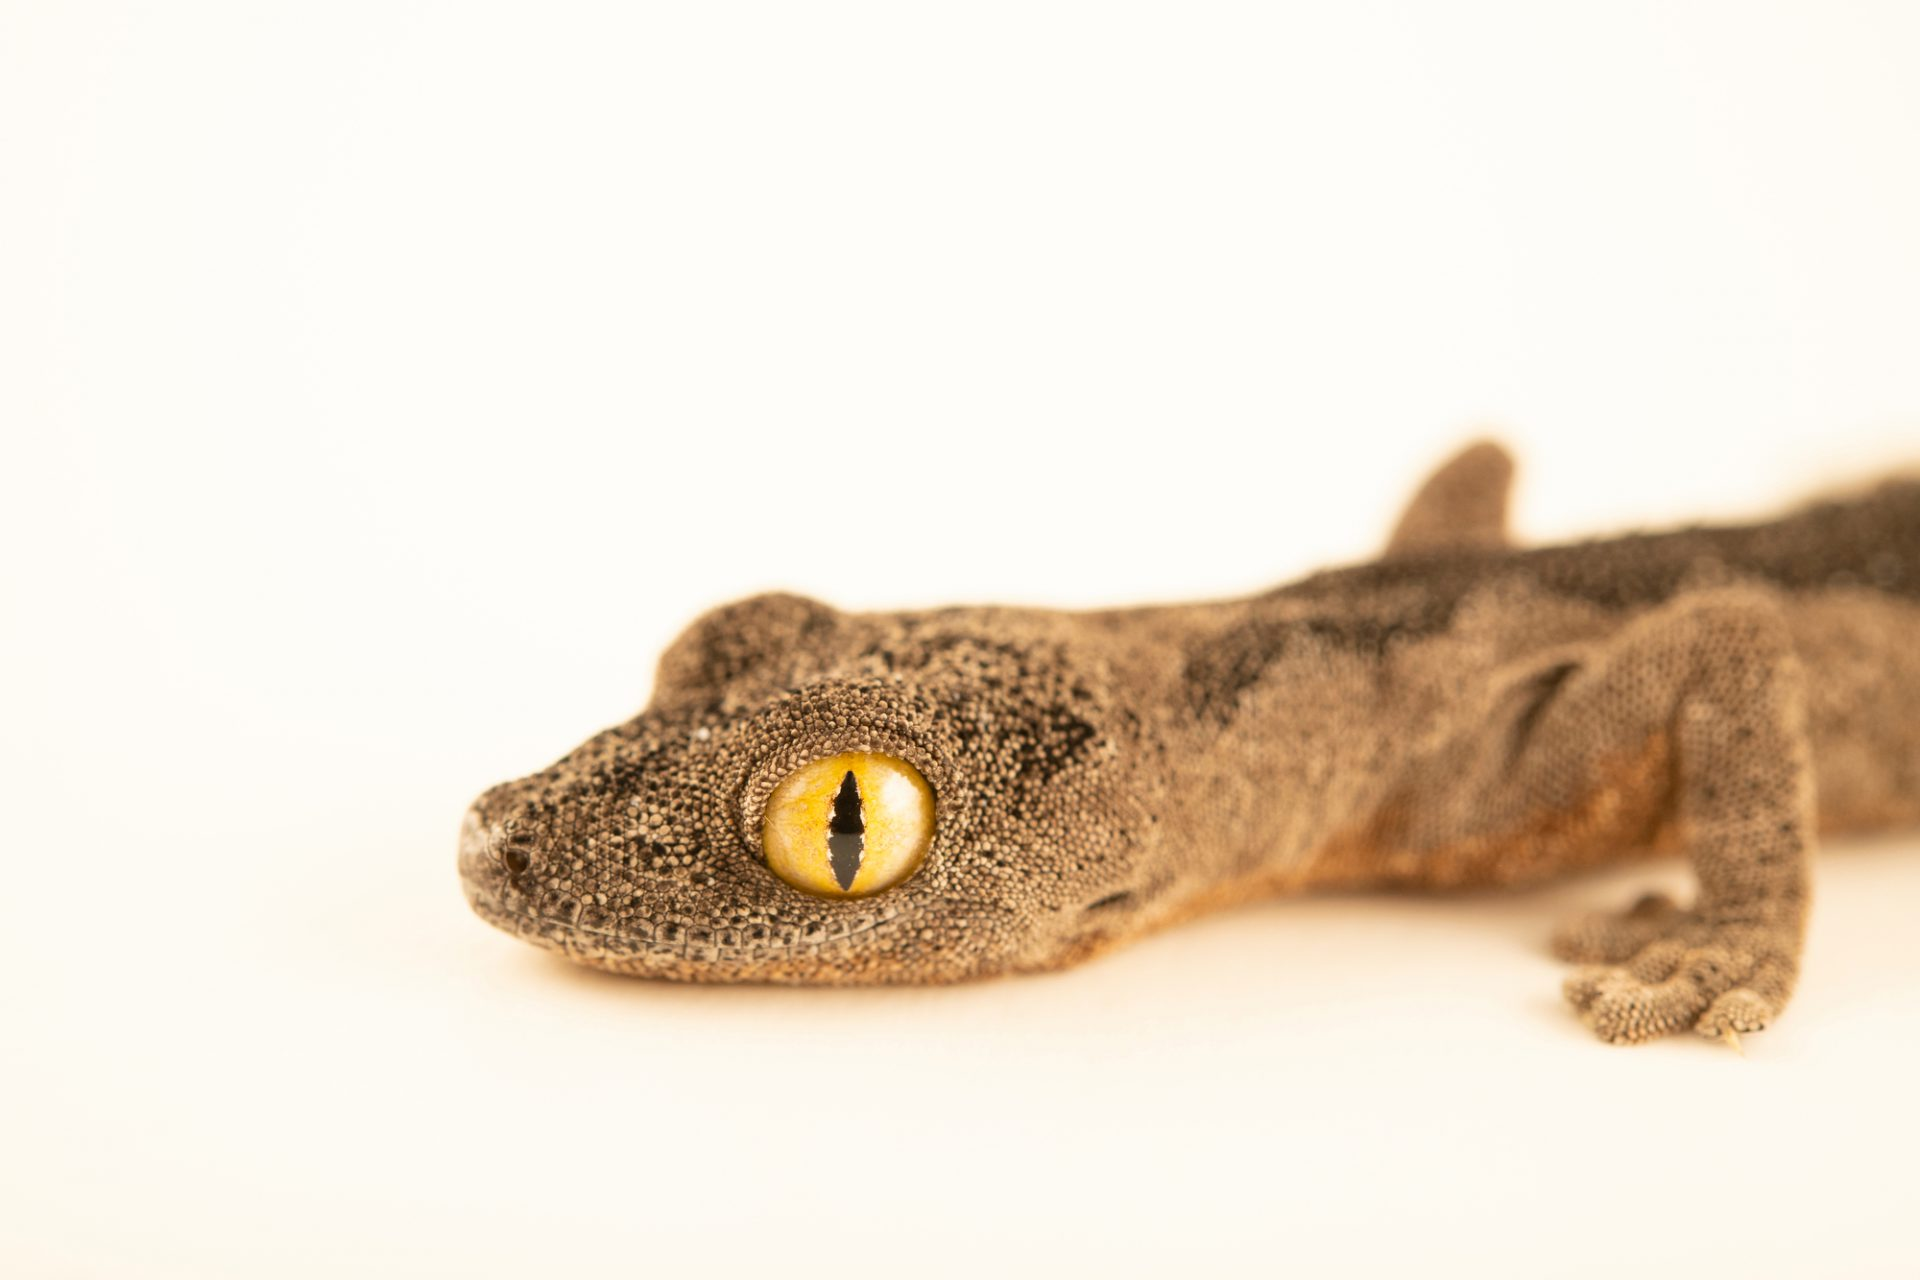 Photo: A Soft spiny-tailed gecko (Strophurus spinigerus) from a private collection.